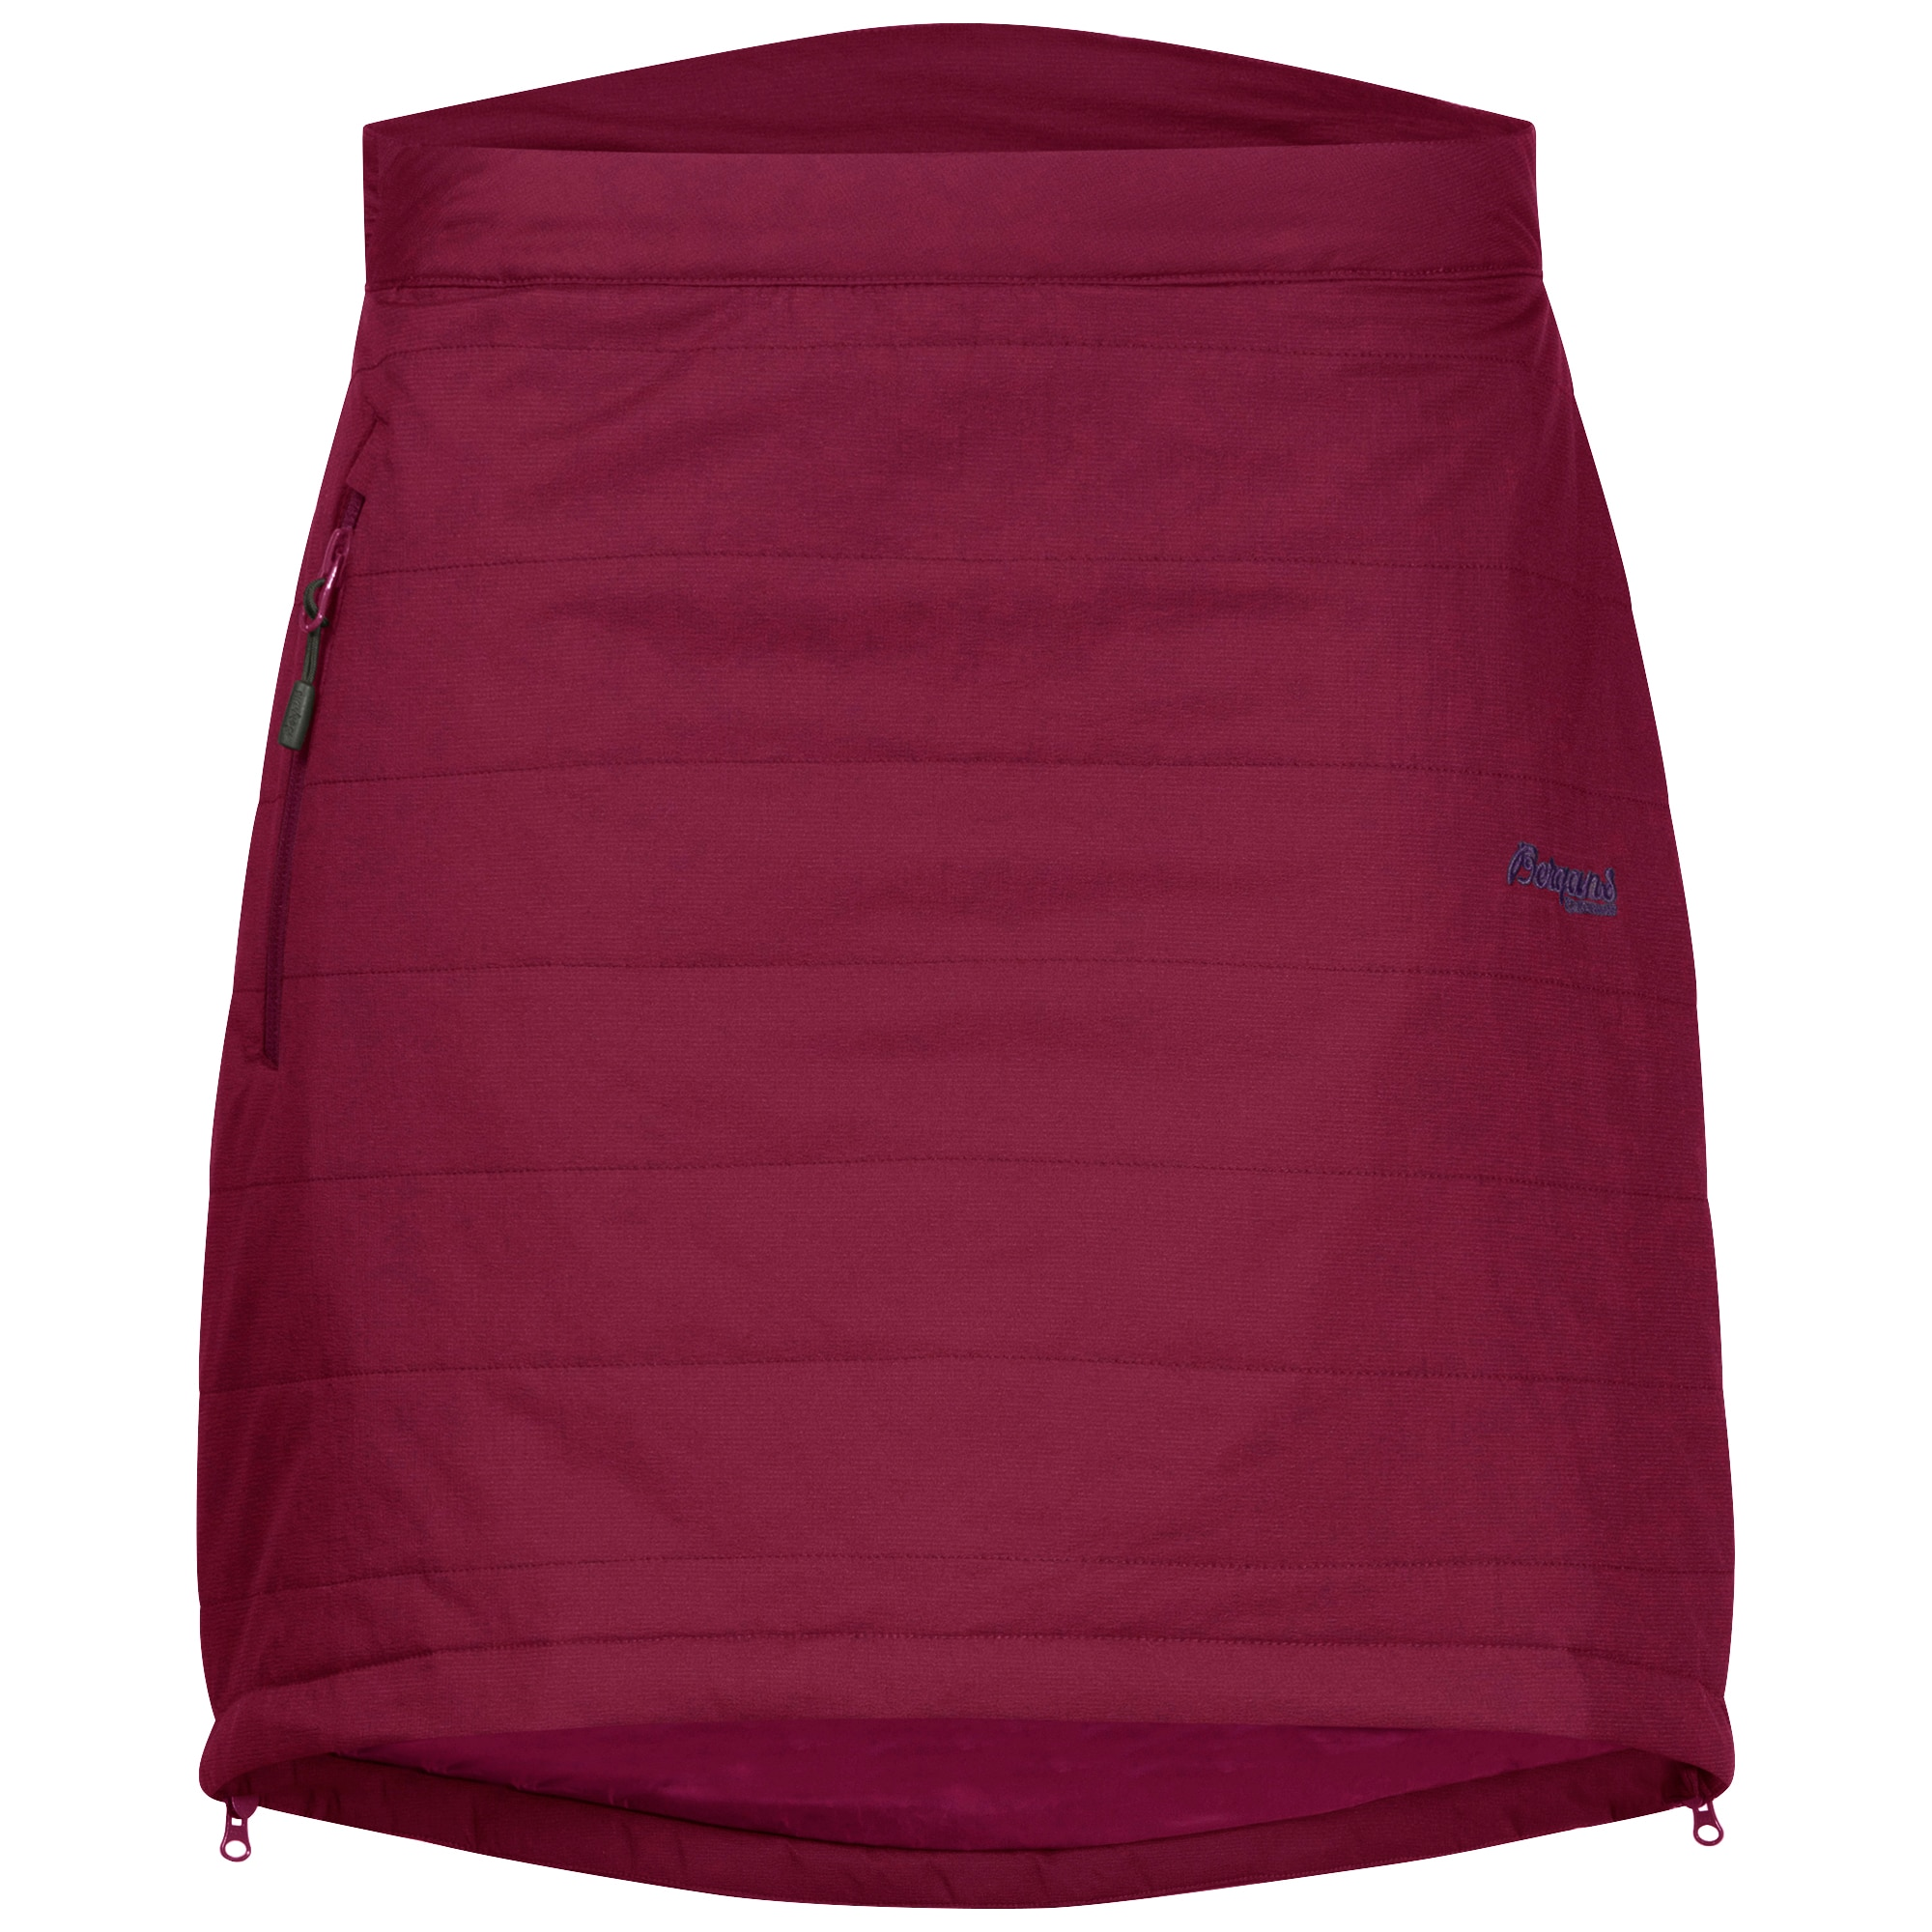 Maribu Insulated Skirt